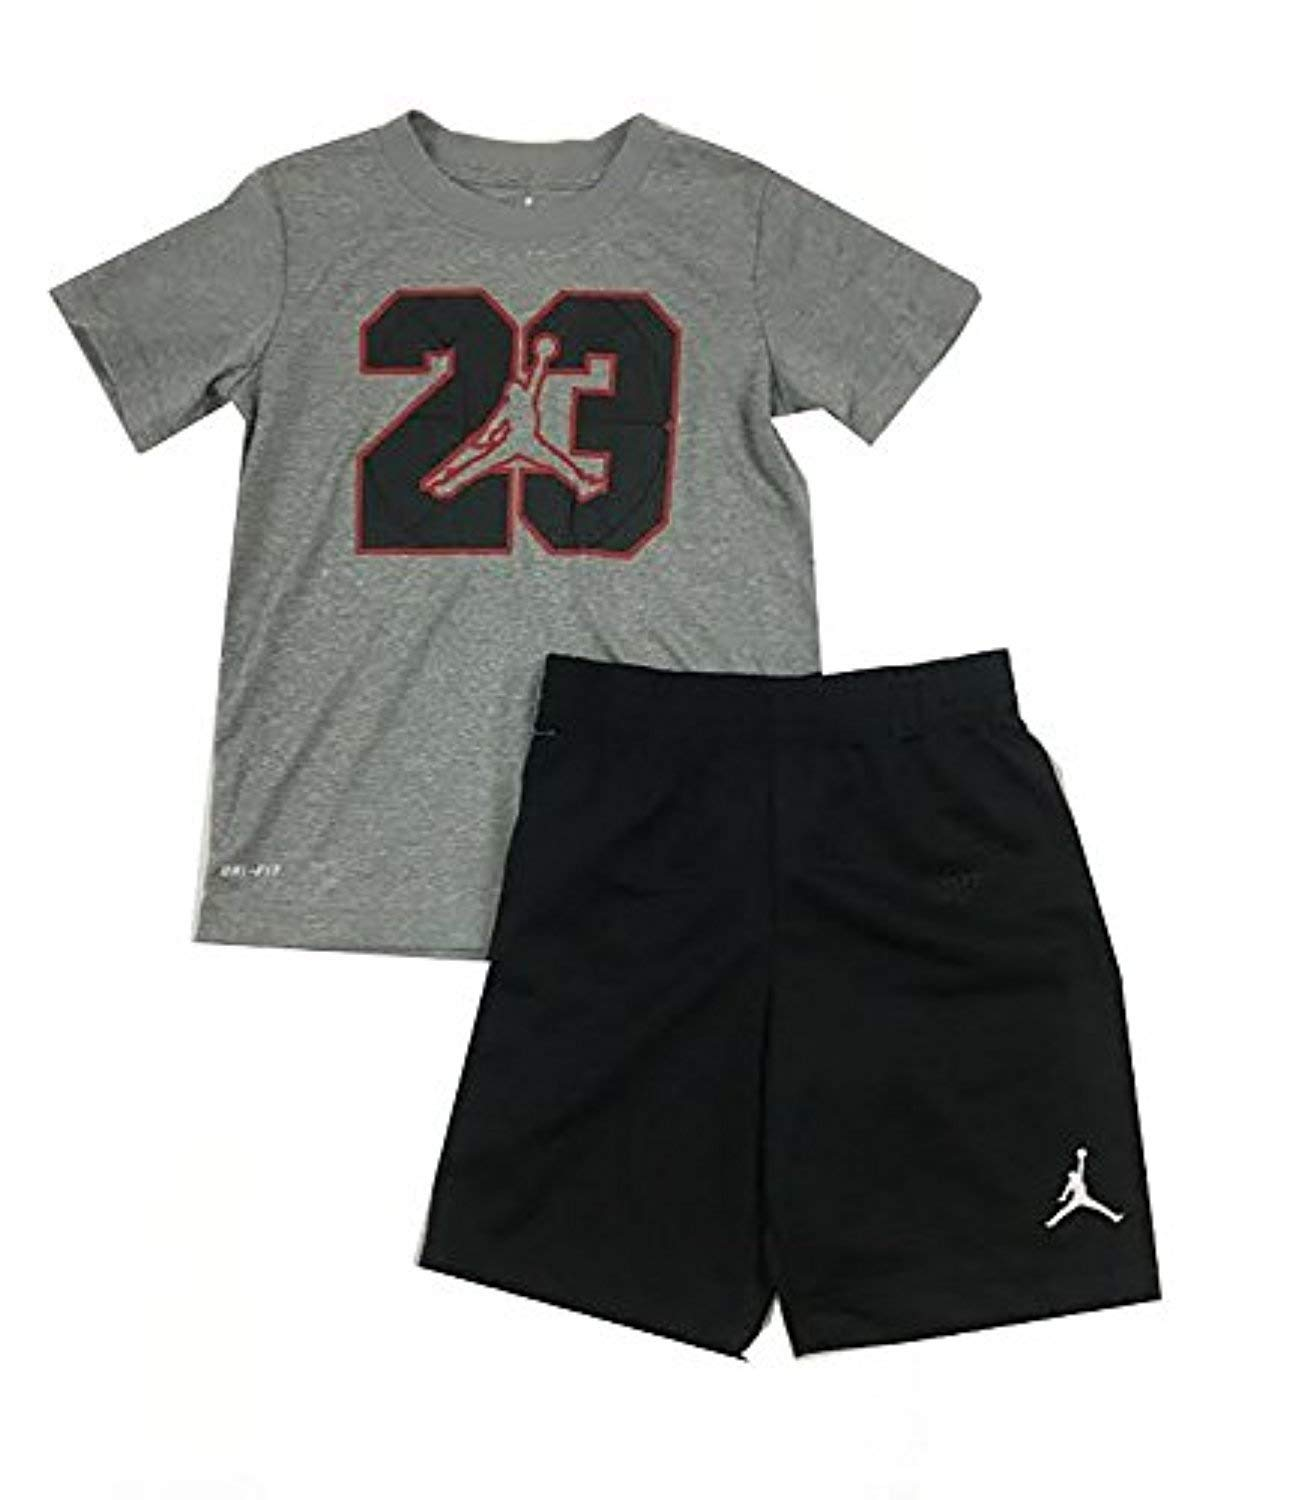 eb4673dfb484 Get Quotations · Jordan Jumpman 23 Logo Little Boys Tee Shirt and Shorts  Set Black Dark Heather Grey